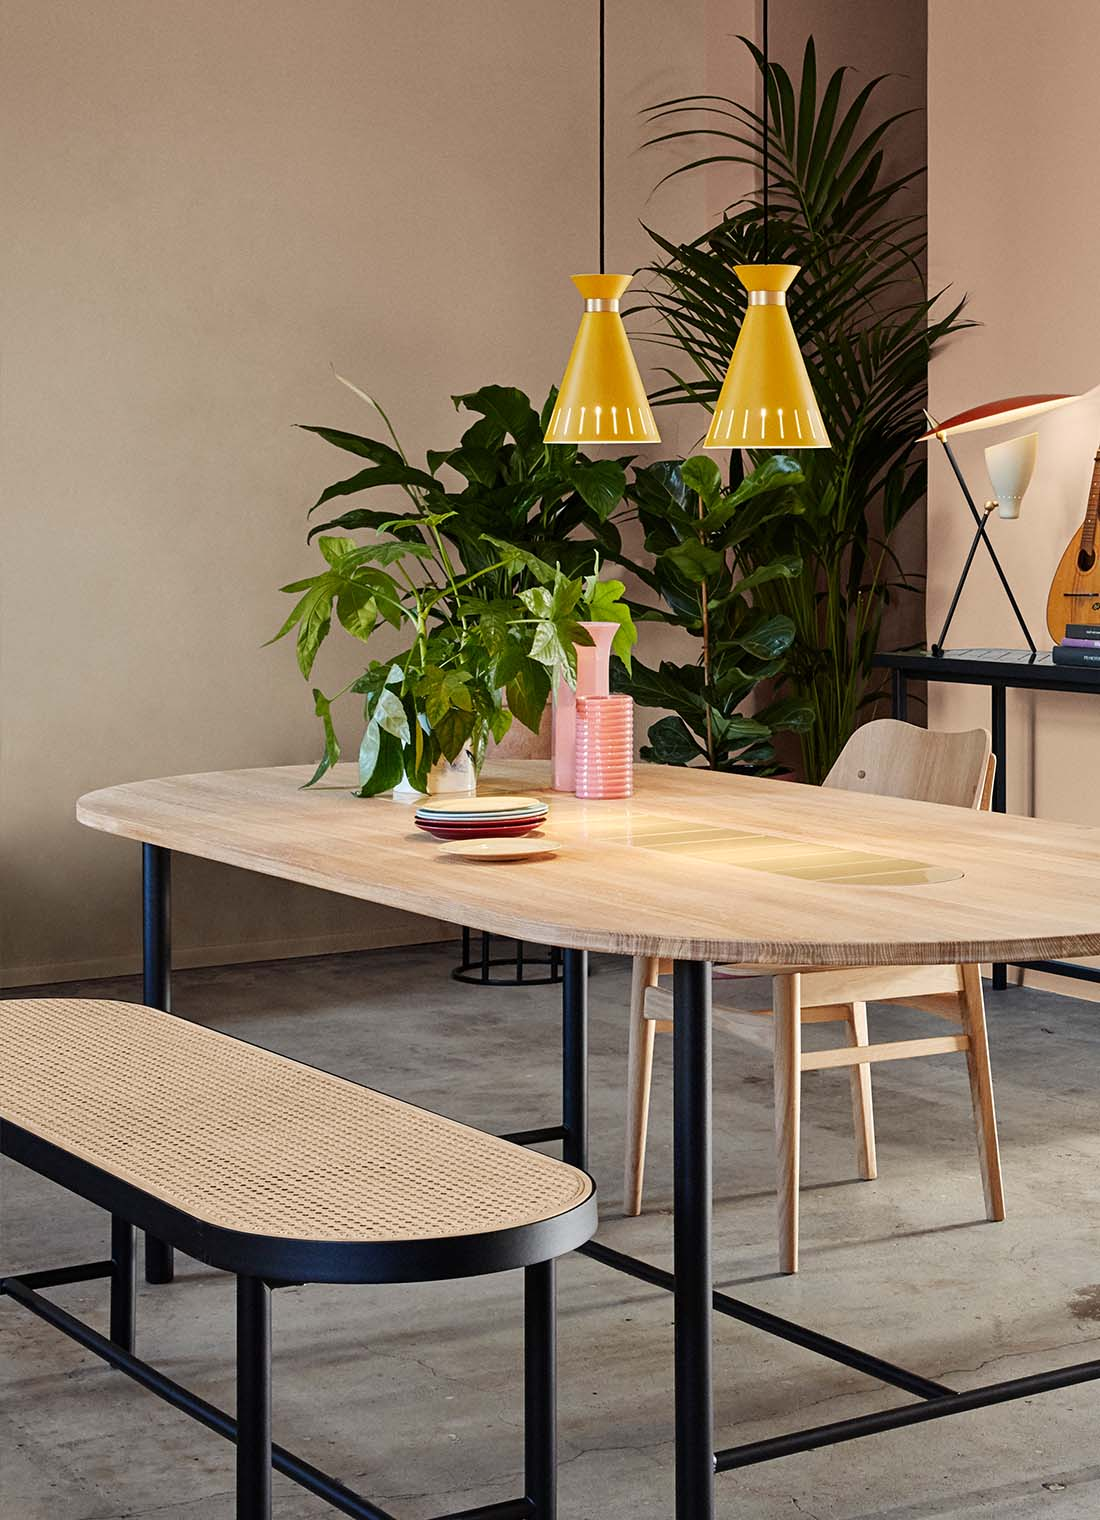 Cone pendant in yellow with Be my guest dining table